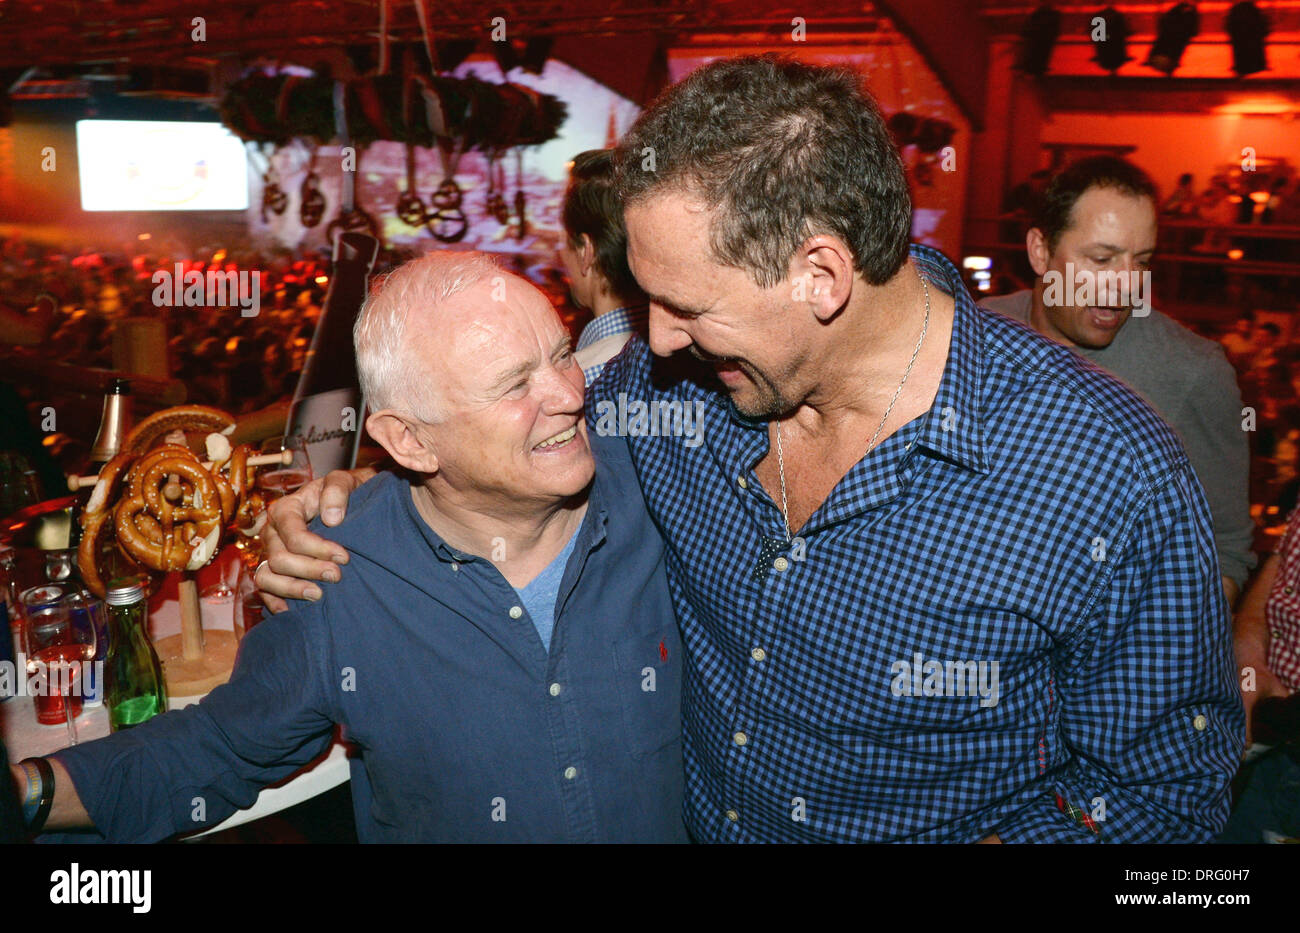 Kitzbuehel, Austria. 24th Jan, 2014. Designer and former Hugo Boss chairman Werner Baldessarini (L) and actor Ralf Moeller (R) pose at the Bavarian veal sausage party in the Stanglwirt bar near Kitzbuehel, Austria, 24 January 2014. Many celebrities came for the annual Austrian downhill ski race Hahnenkamm race in worldfamous skiing location. Photo: Felix Hoerhager/dpa/Alamy Live News - Stock Image